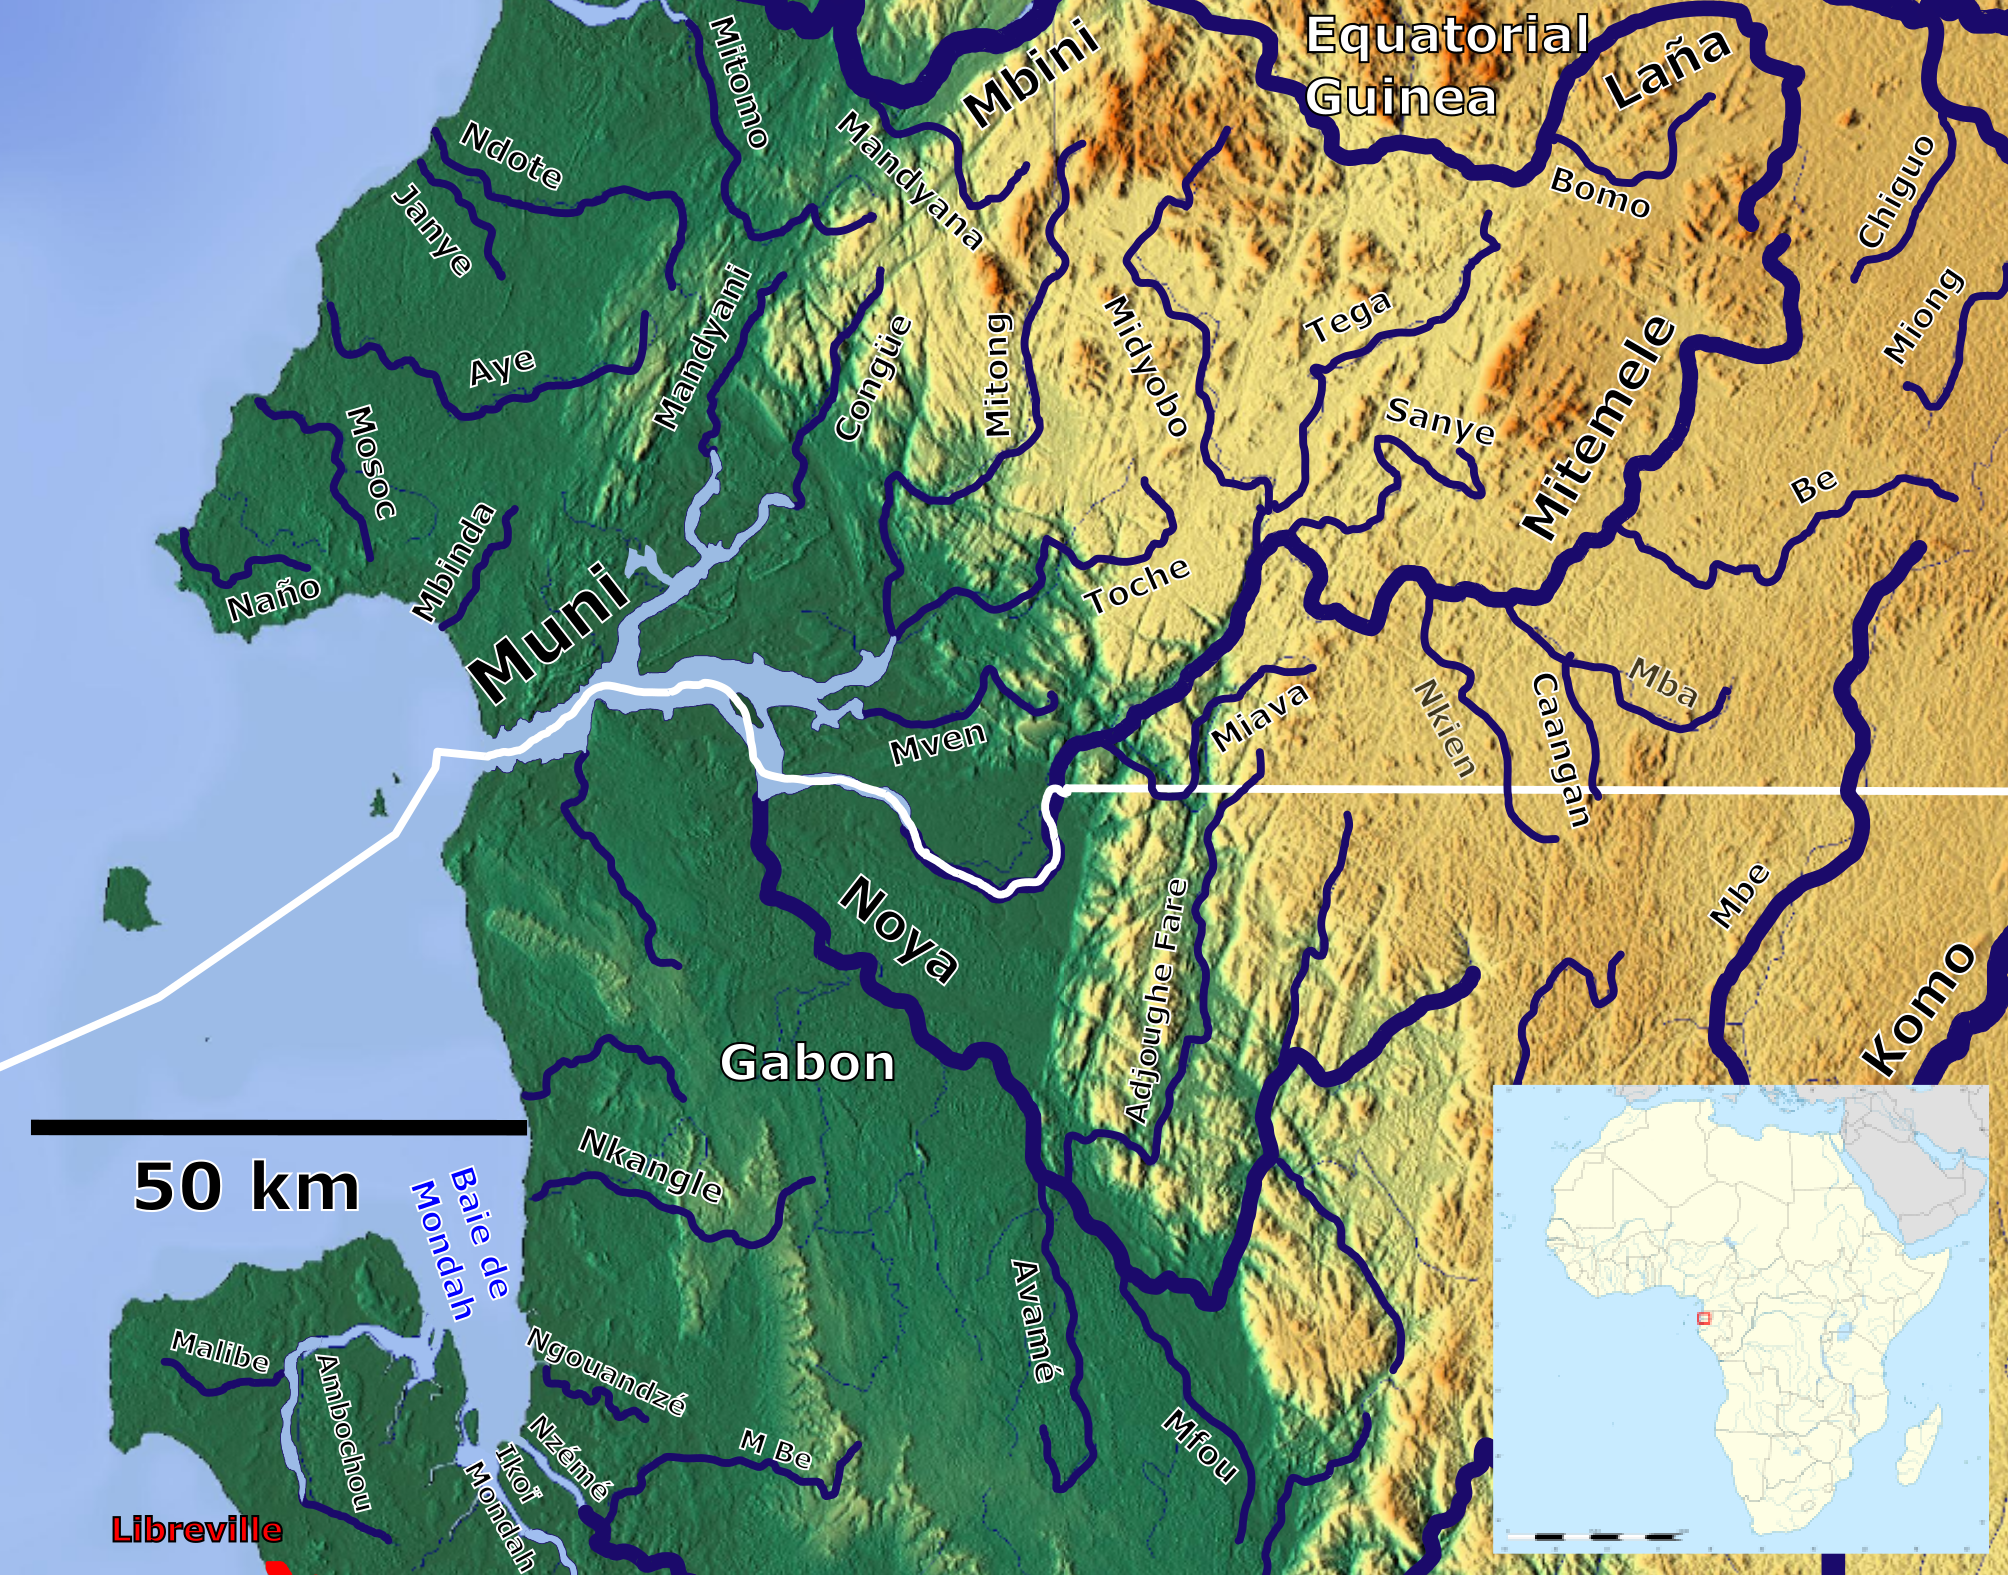 Muni River - Wikipedia on map of gozo island, map of hainan island, map of symi, map of isle of pines, map of bhutan, map of tahaa, map of gambia, map of togo, map of algeria, map of tristan da cunha, map of reunion, map of singapore, map of banks island, map of mongolia, map of ascension, map of latvia, map of central african republic, map of kalymnos, map of southwest nigeria, map of bahrain,